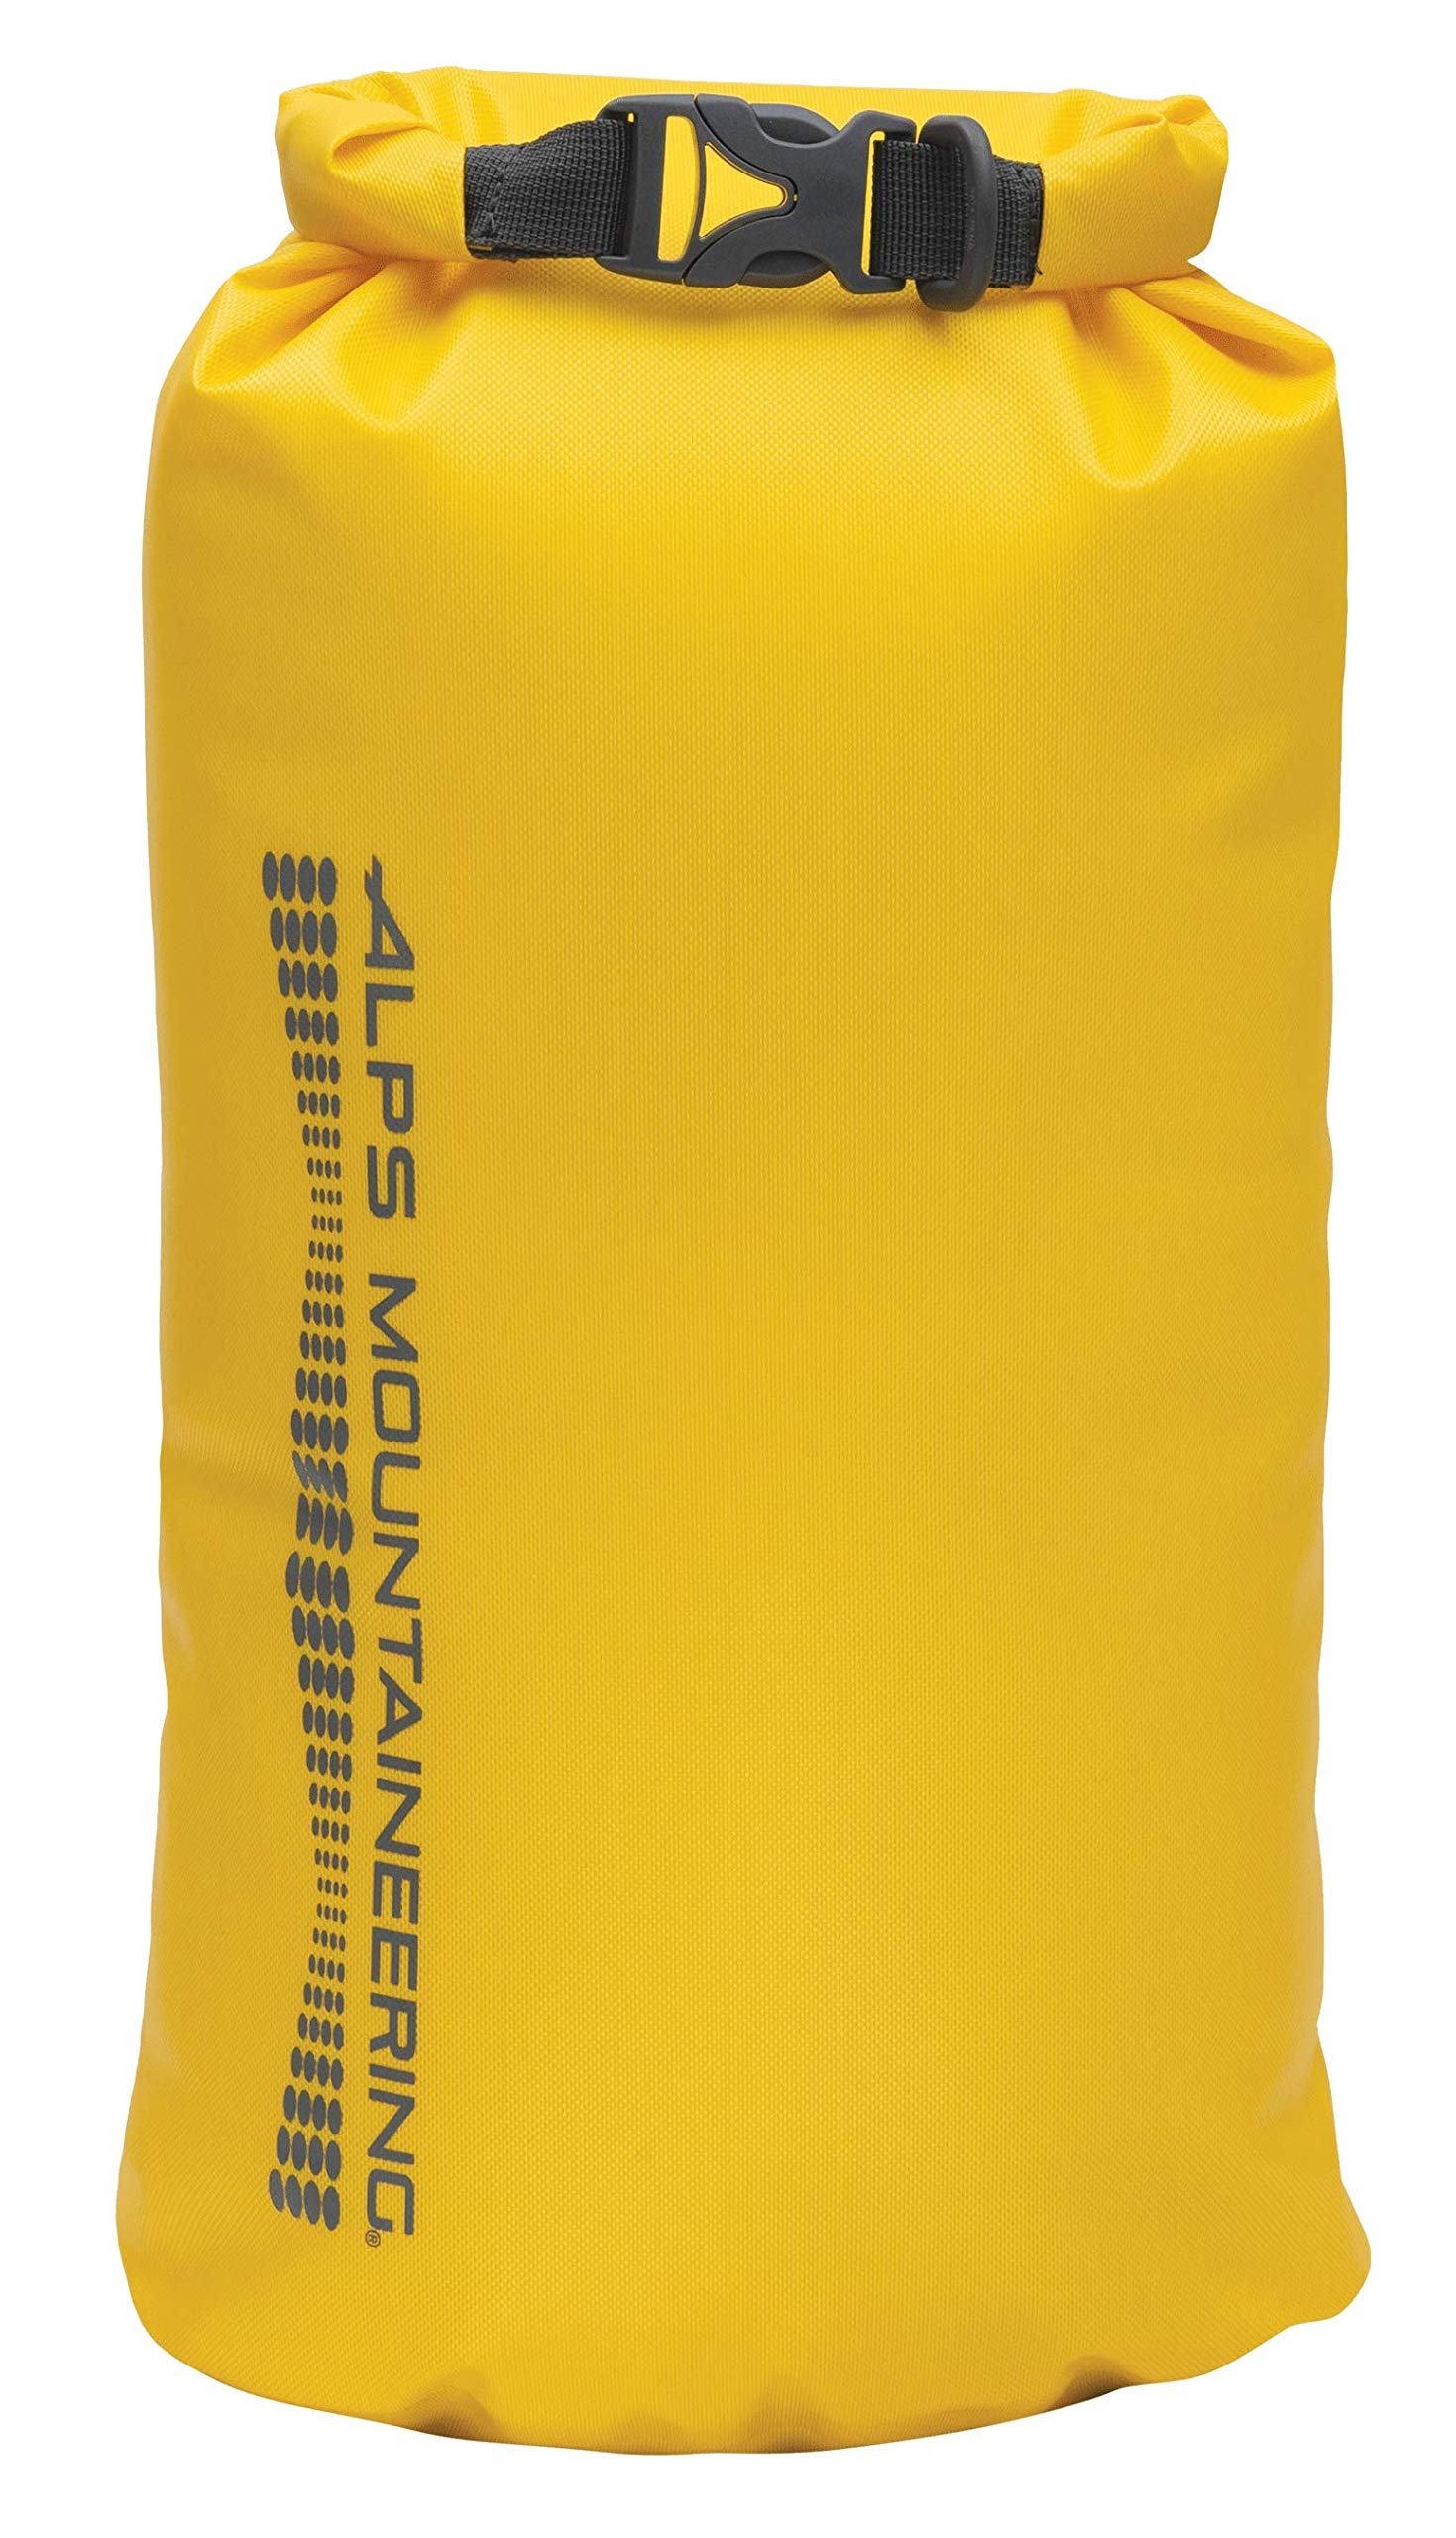 ALPS Mountaineering Dry Passage Waterproof Dry Bag 35L, Gold by ALPS Mountaineering